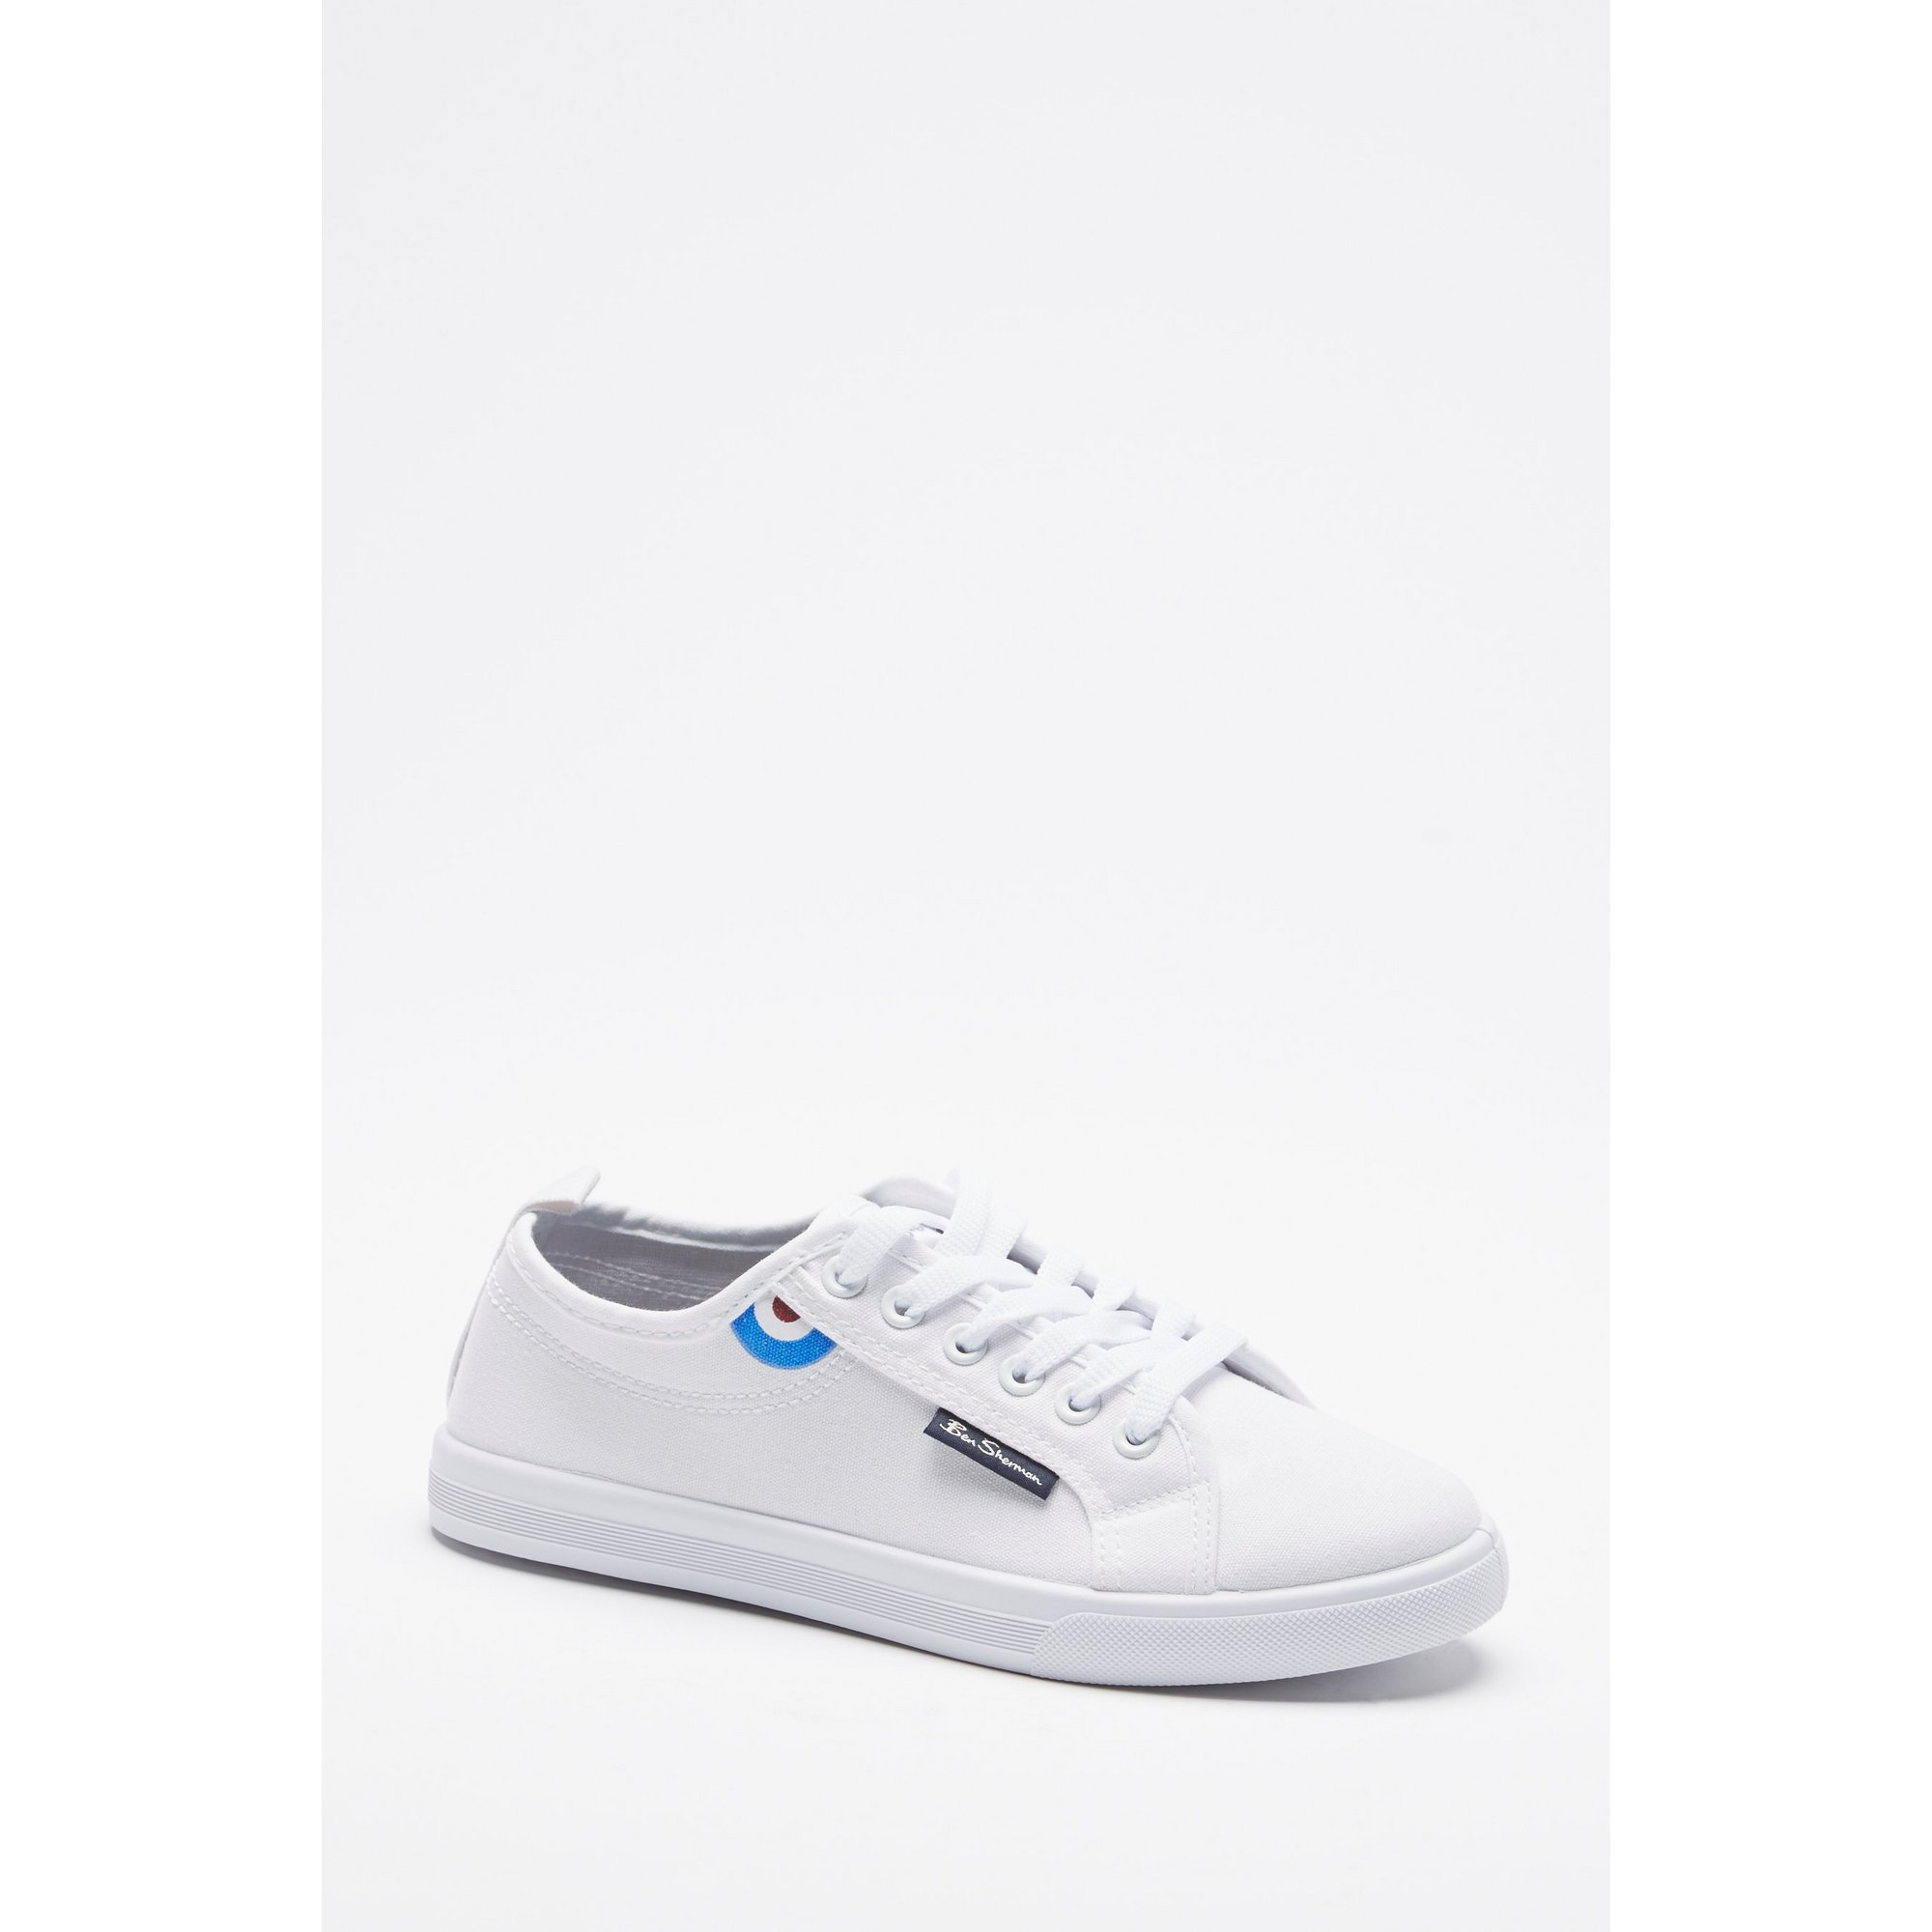 Image of Ben Sherman South Logo Lace Up Plimsole Trainers